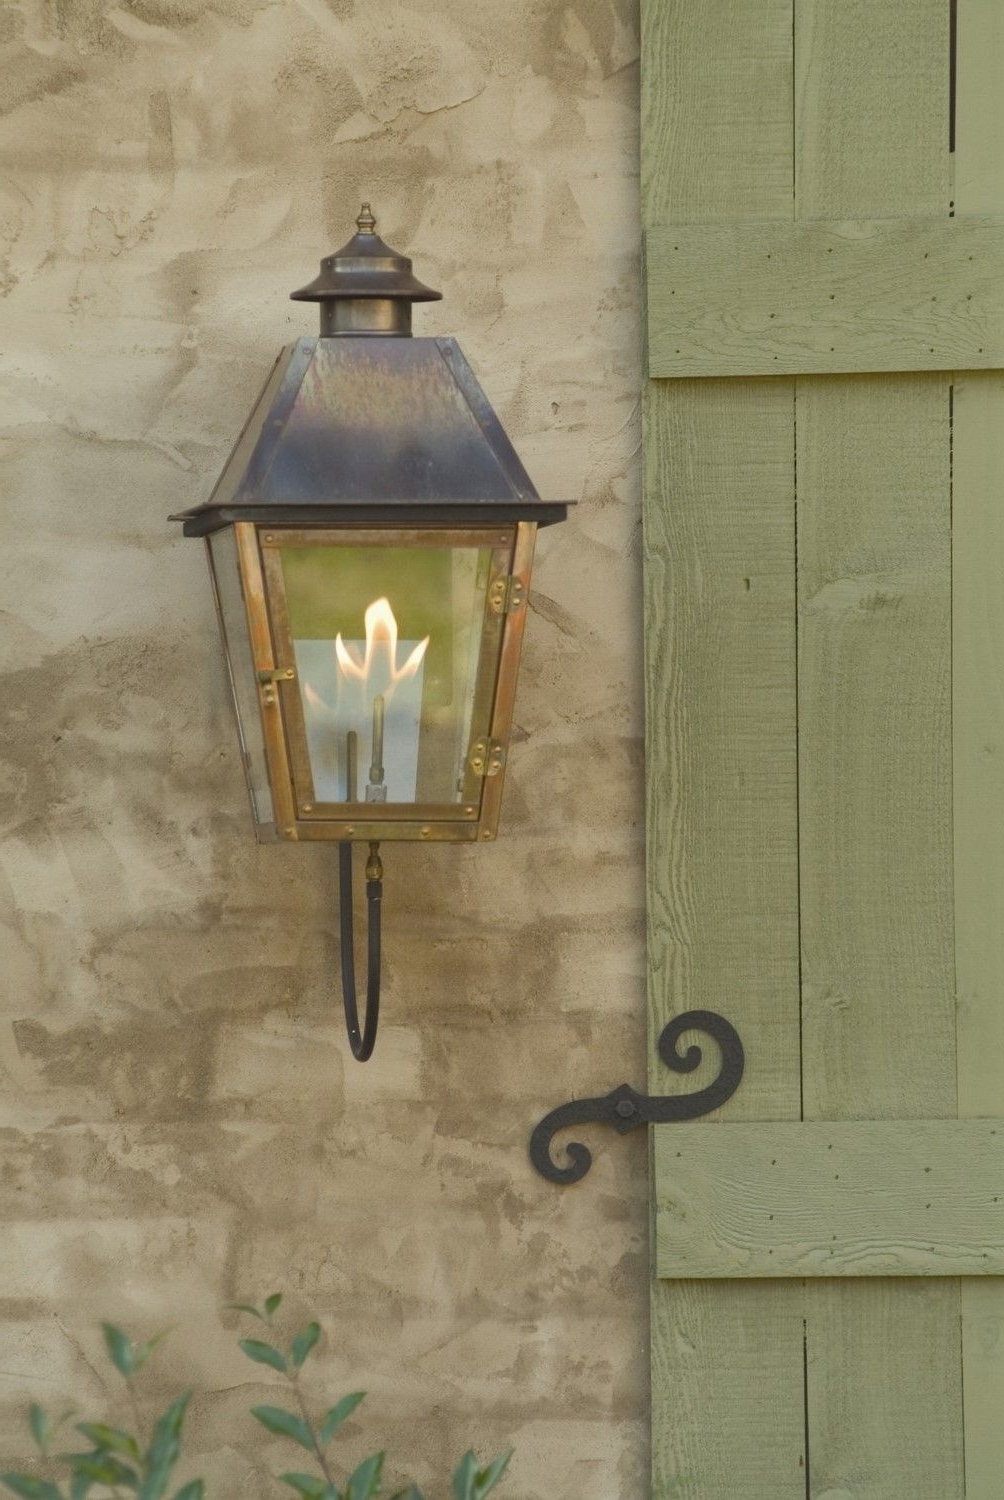 Outdoor Gas Lanterns For Recent Carolina Lanterns Gas Lamp Atlas Wall Mount (View 11 of 20)